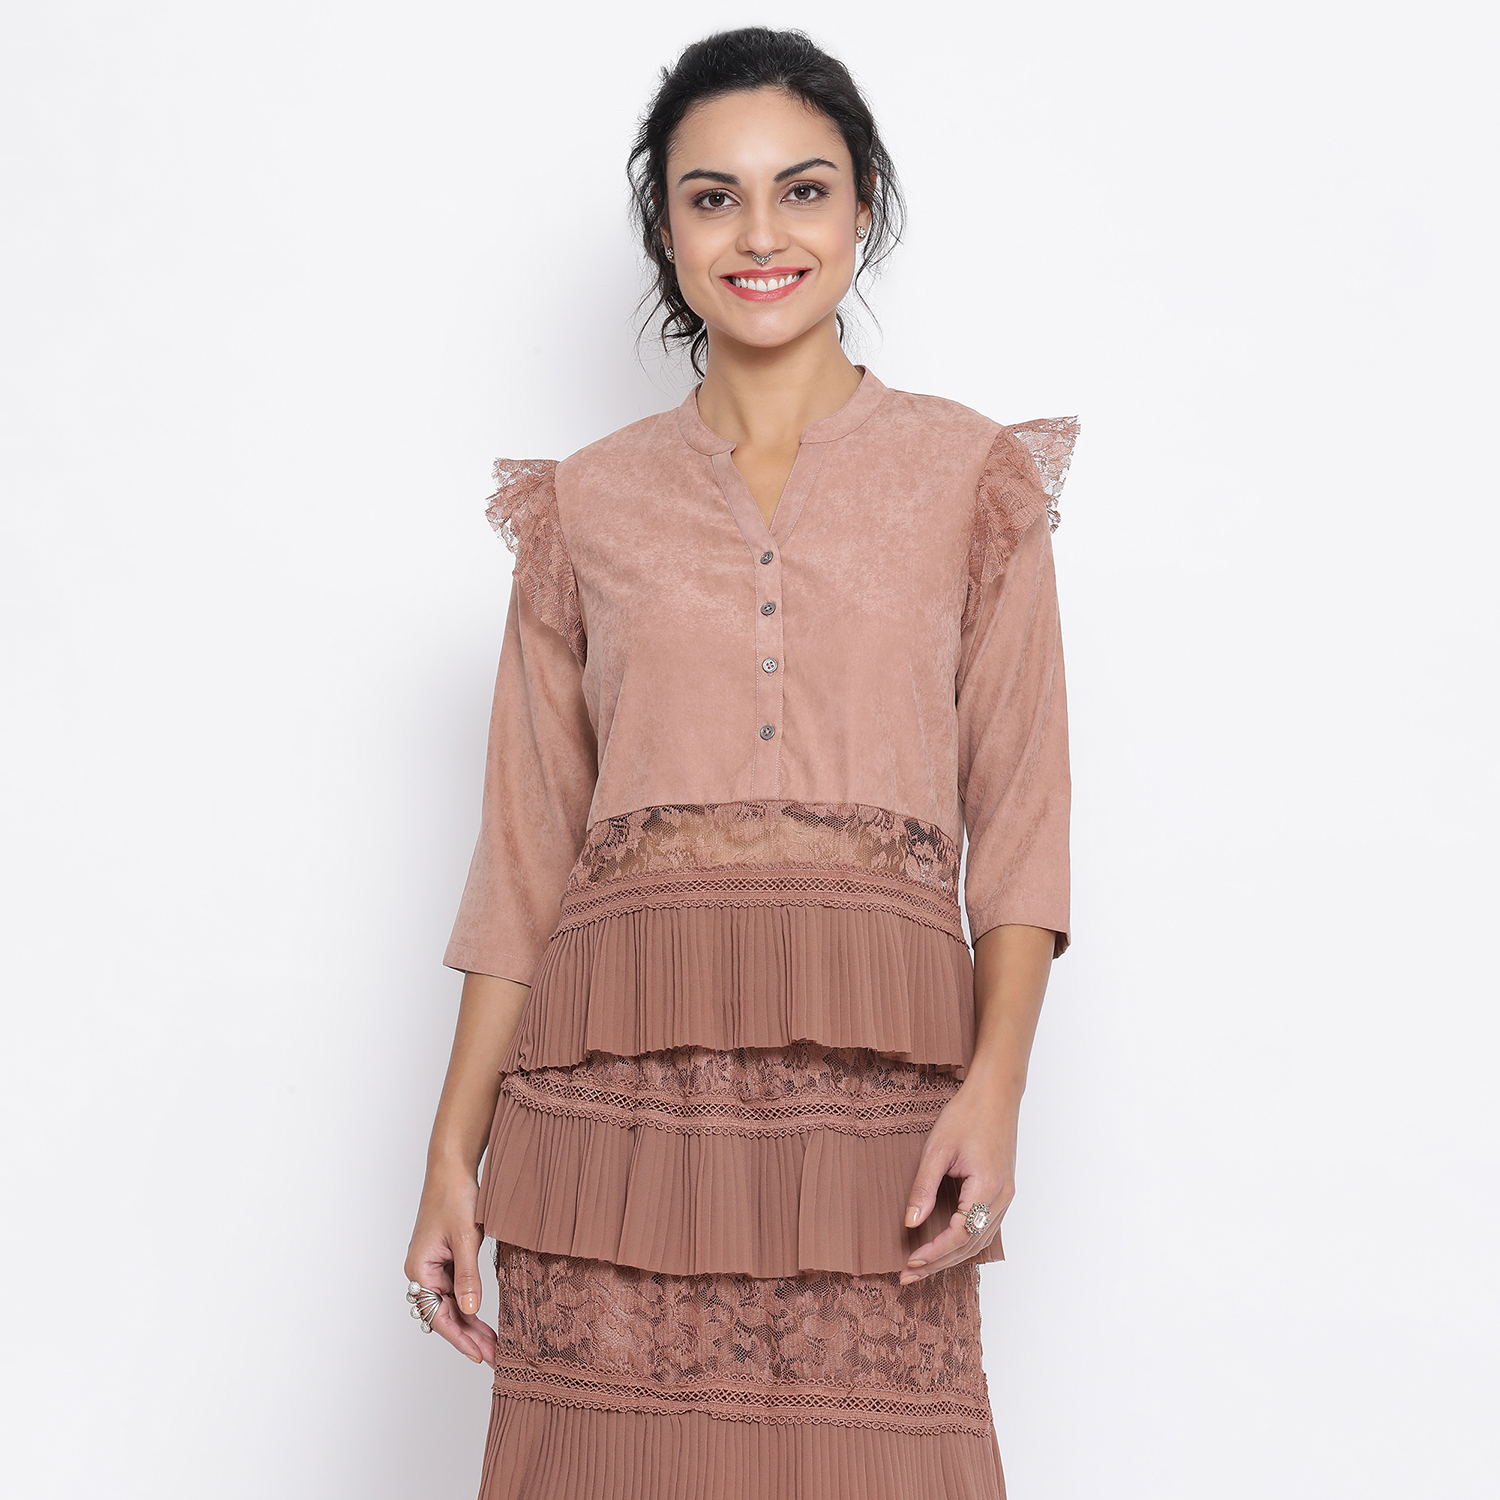 Buy Rust Top With Net And Lace At Waist For Women